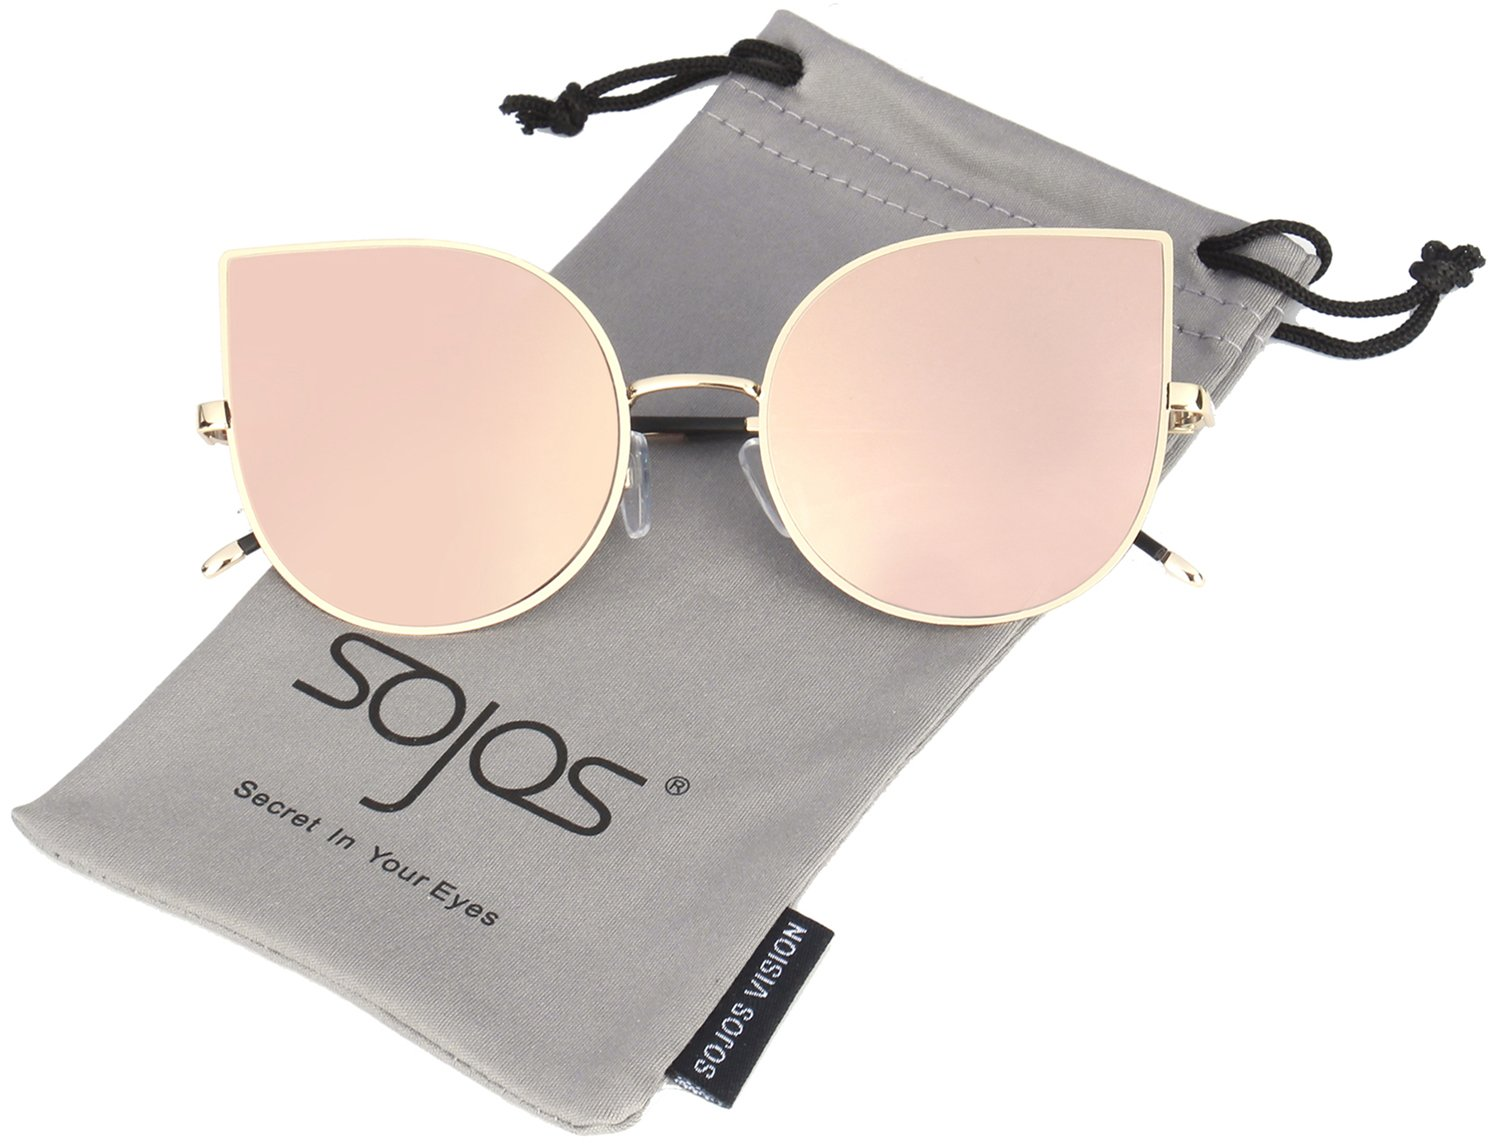 SOJOS Cat Eye Mirrored Flat Lenses Ultra Thin Light Metal Frame Women Sunglasses SJ1022 with Gold Frame/Pink Mirrored Lens by SOJOS